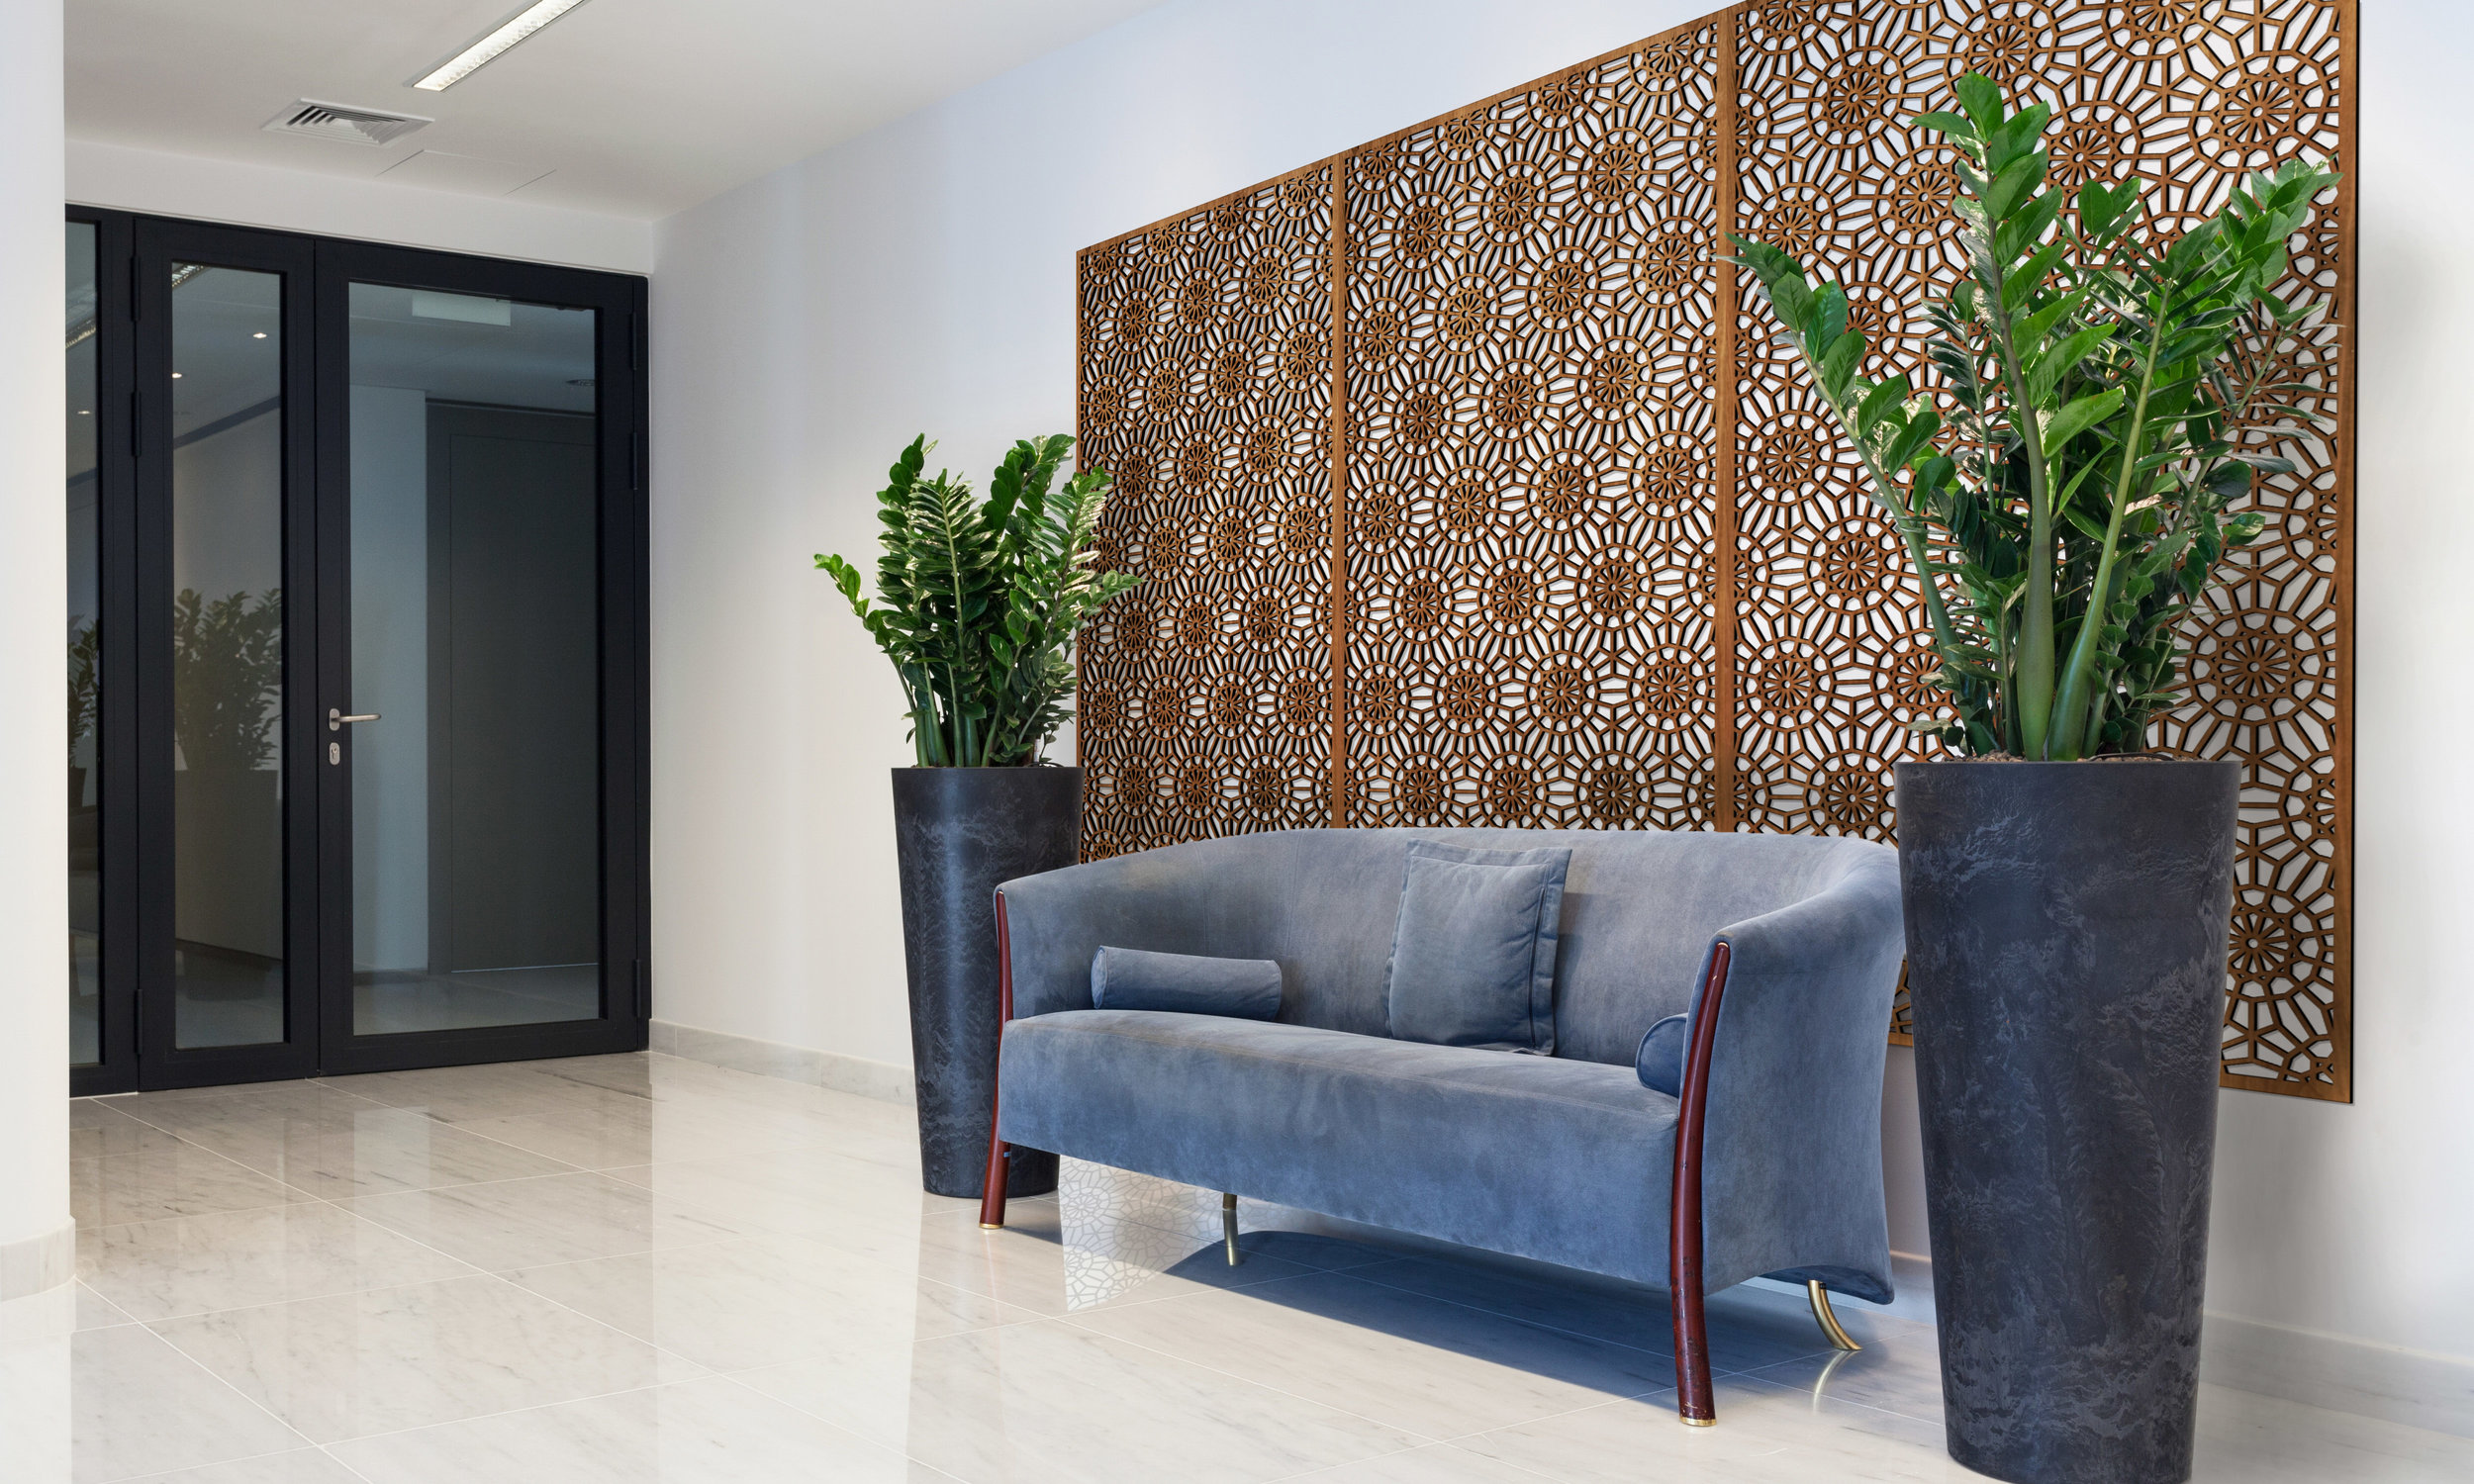 Installation Rendering A   Marrakesh decorative office wall panel - shown in Cherry